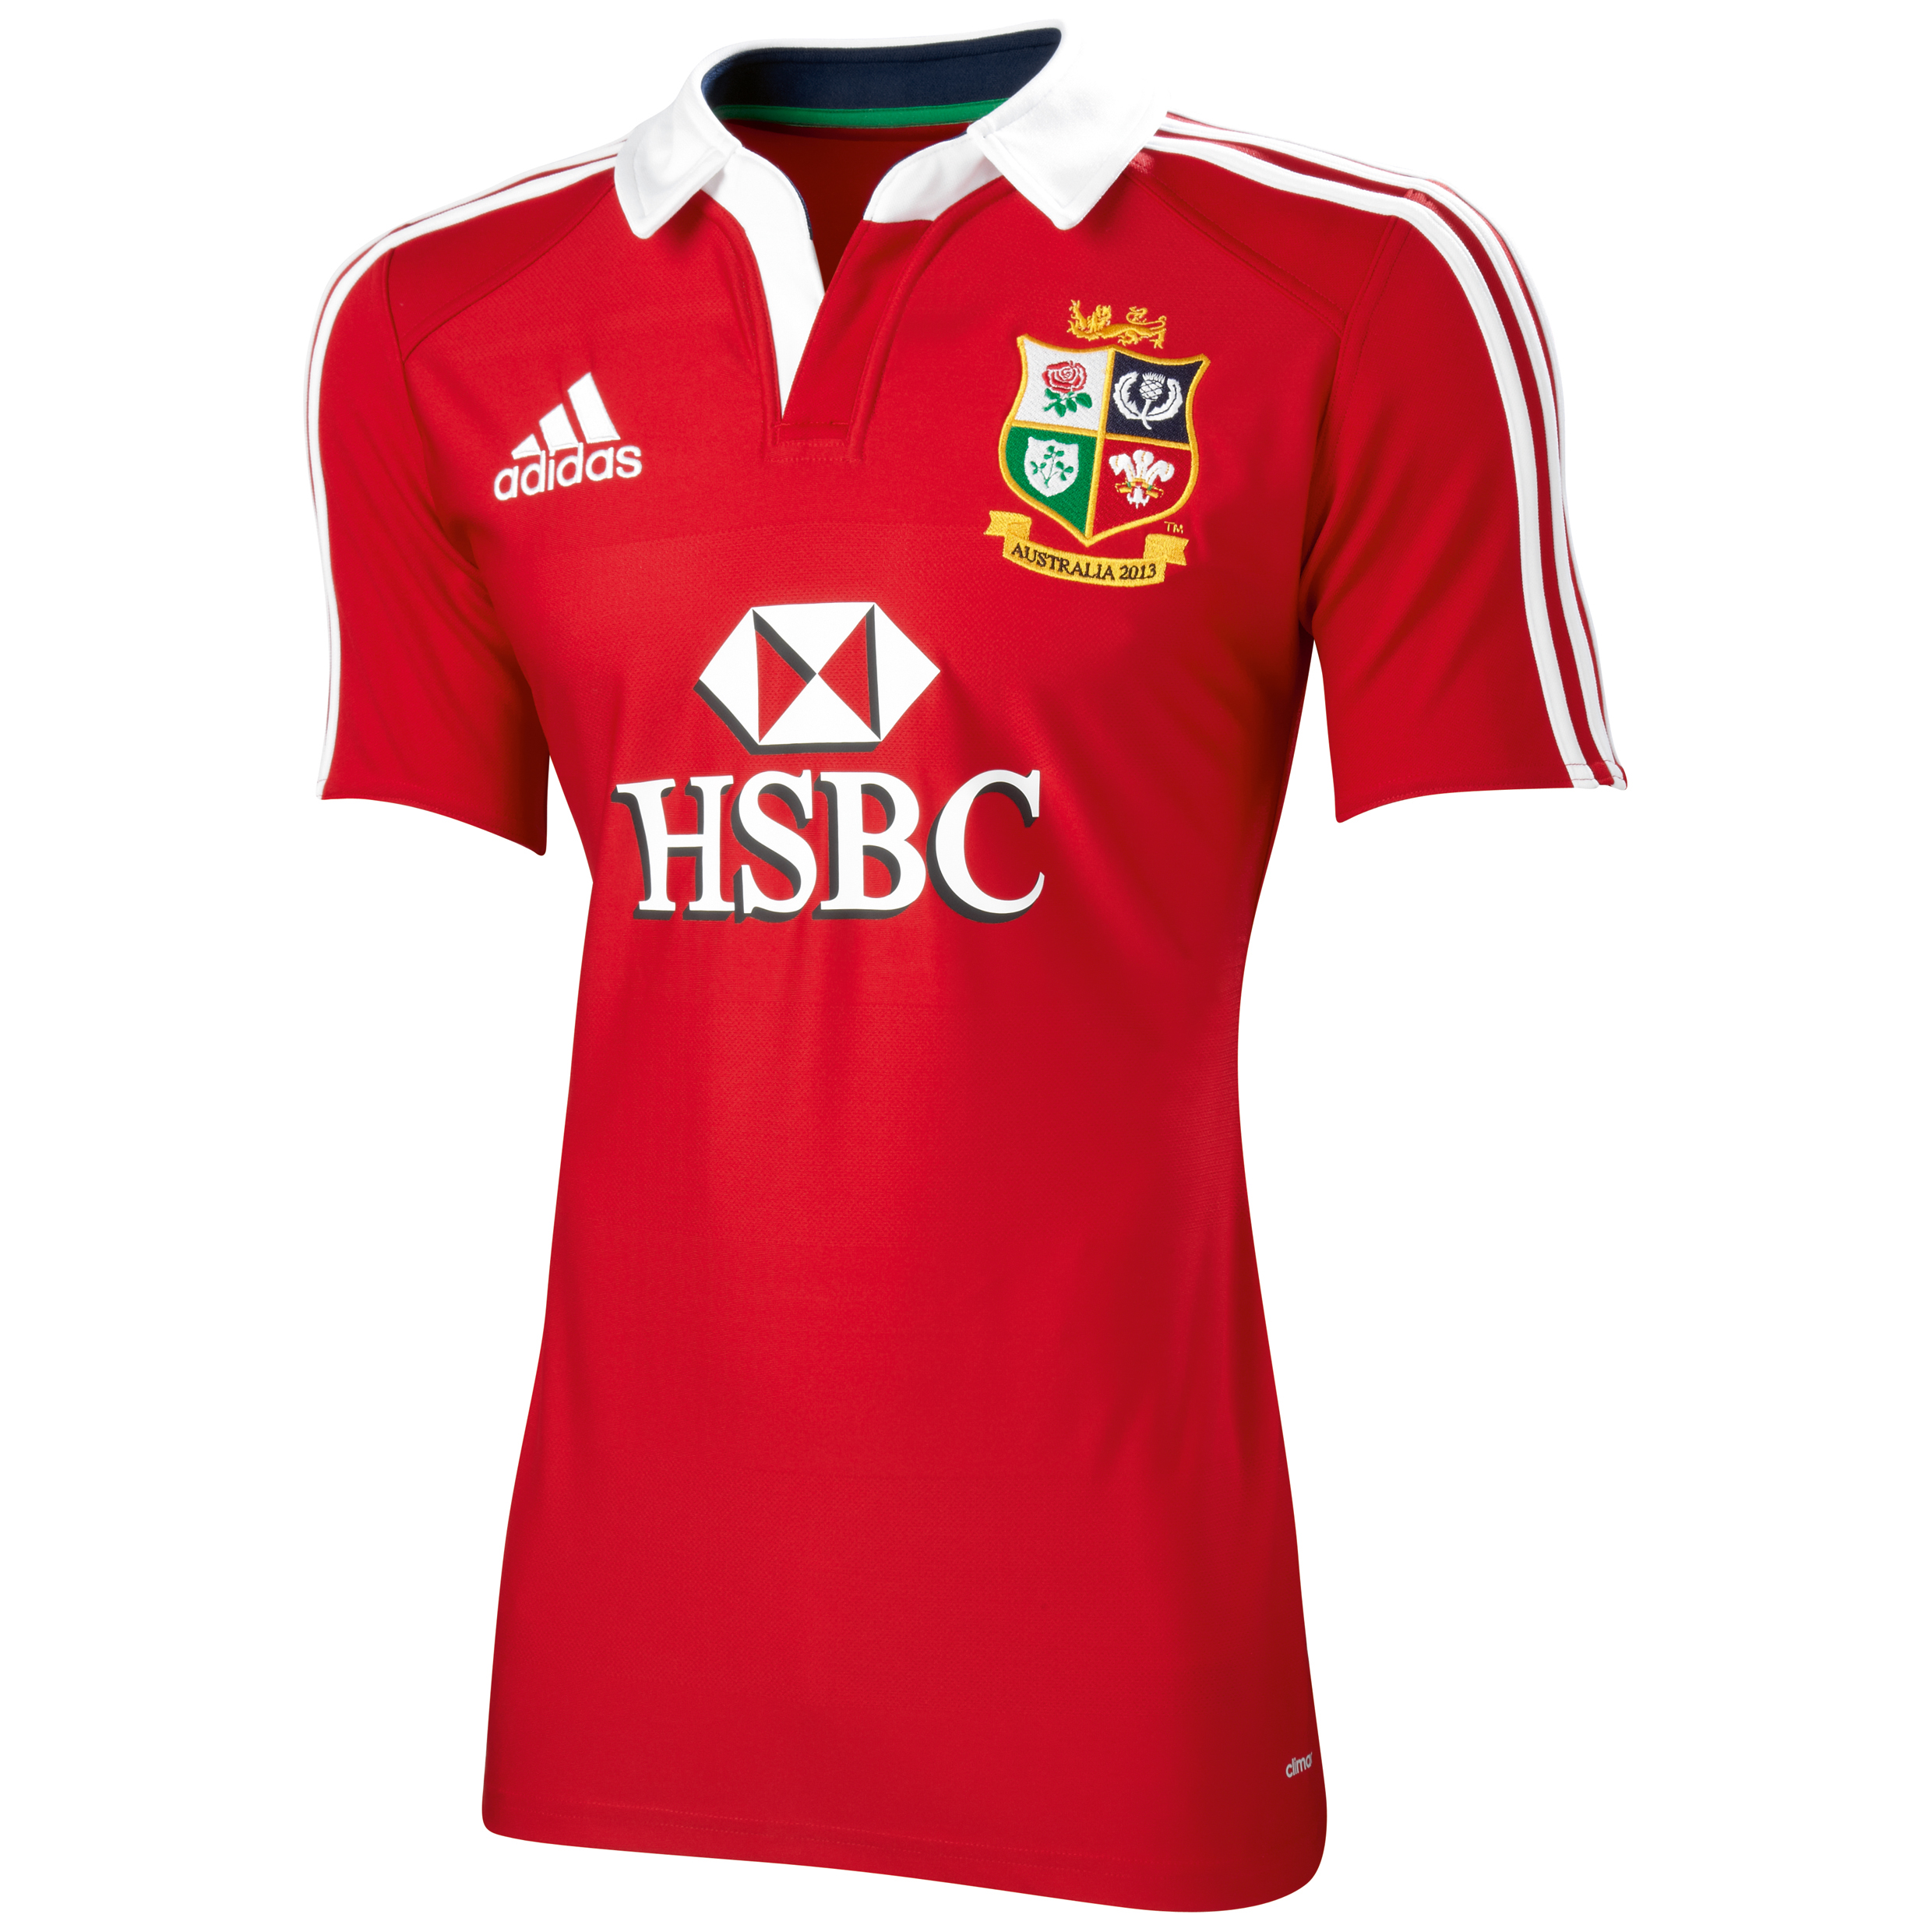 adidas British and Irish Lions Authentic Home Shirt  2013